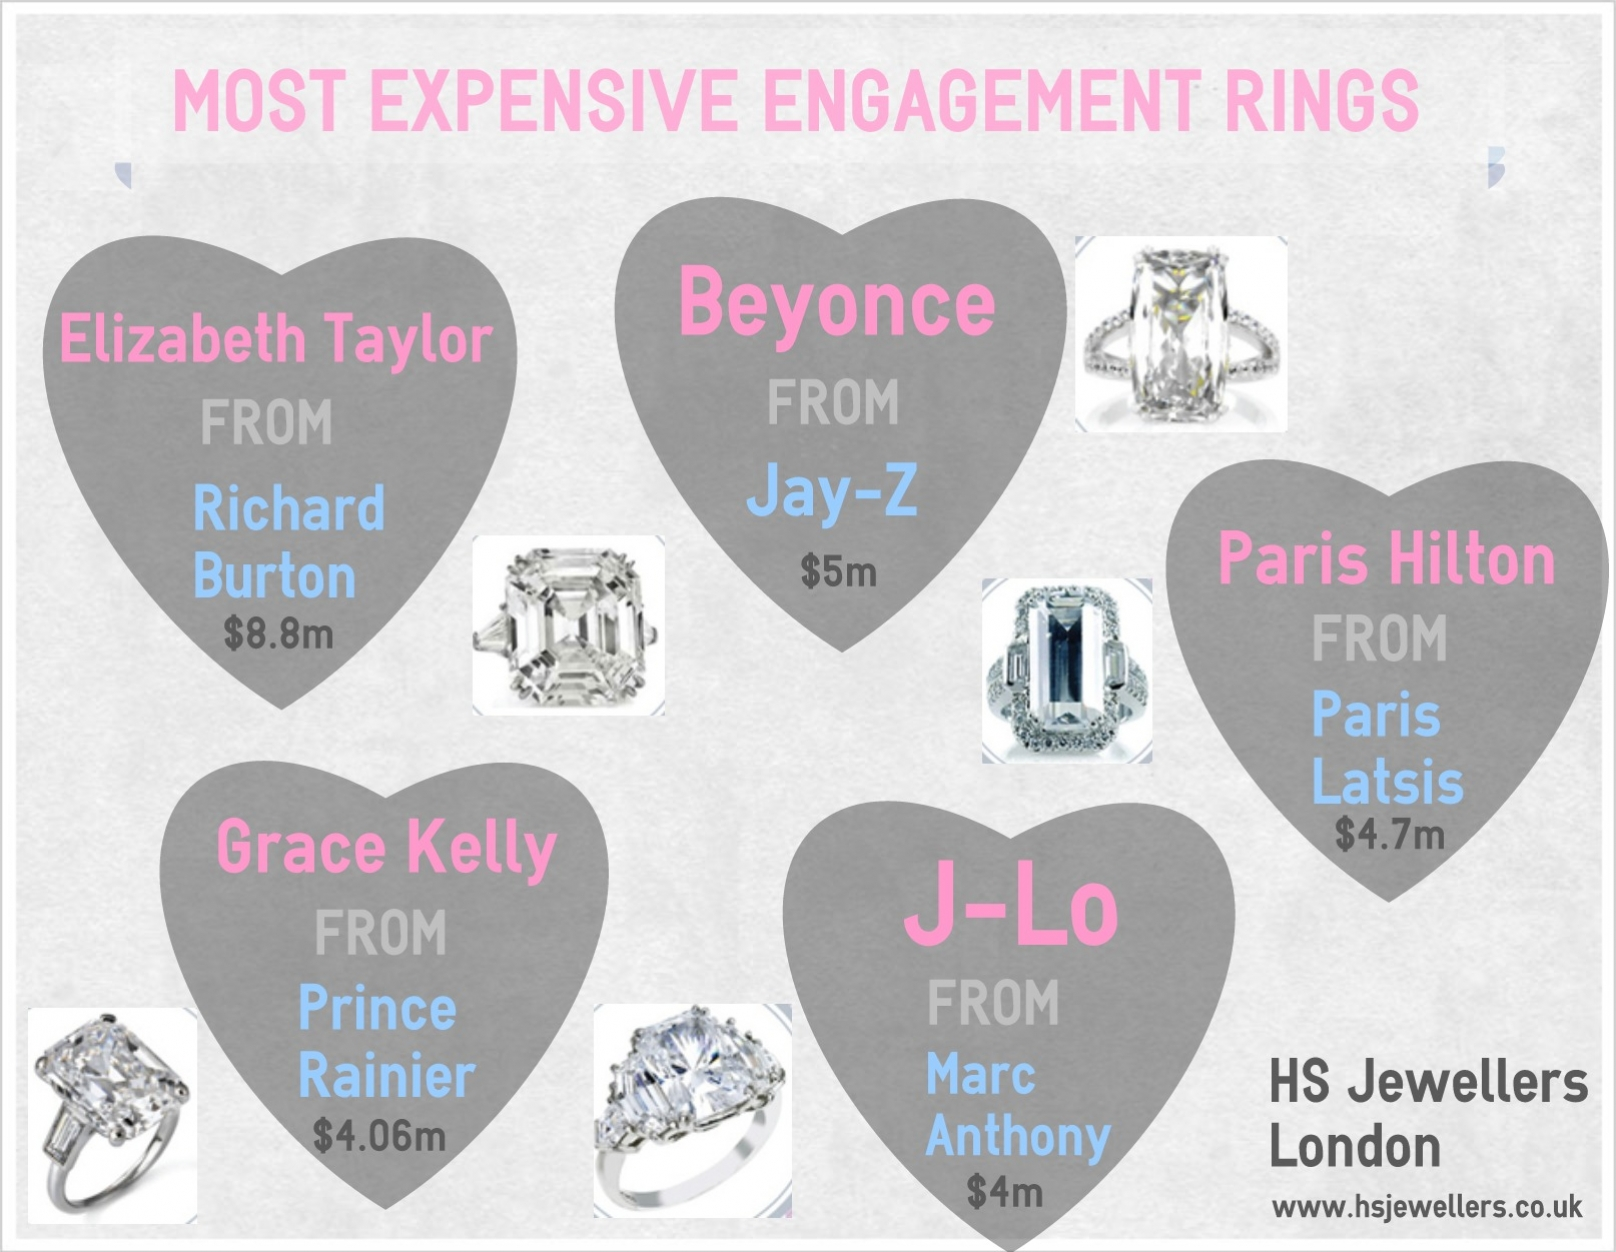 jewellery women insider impressive athelred most expensive celebrity of wedding concept ring rings for diamond engagement